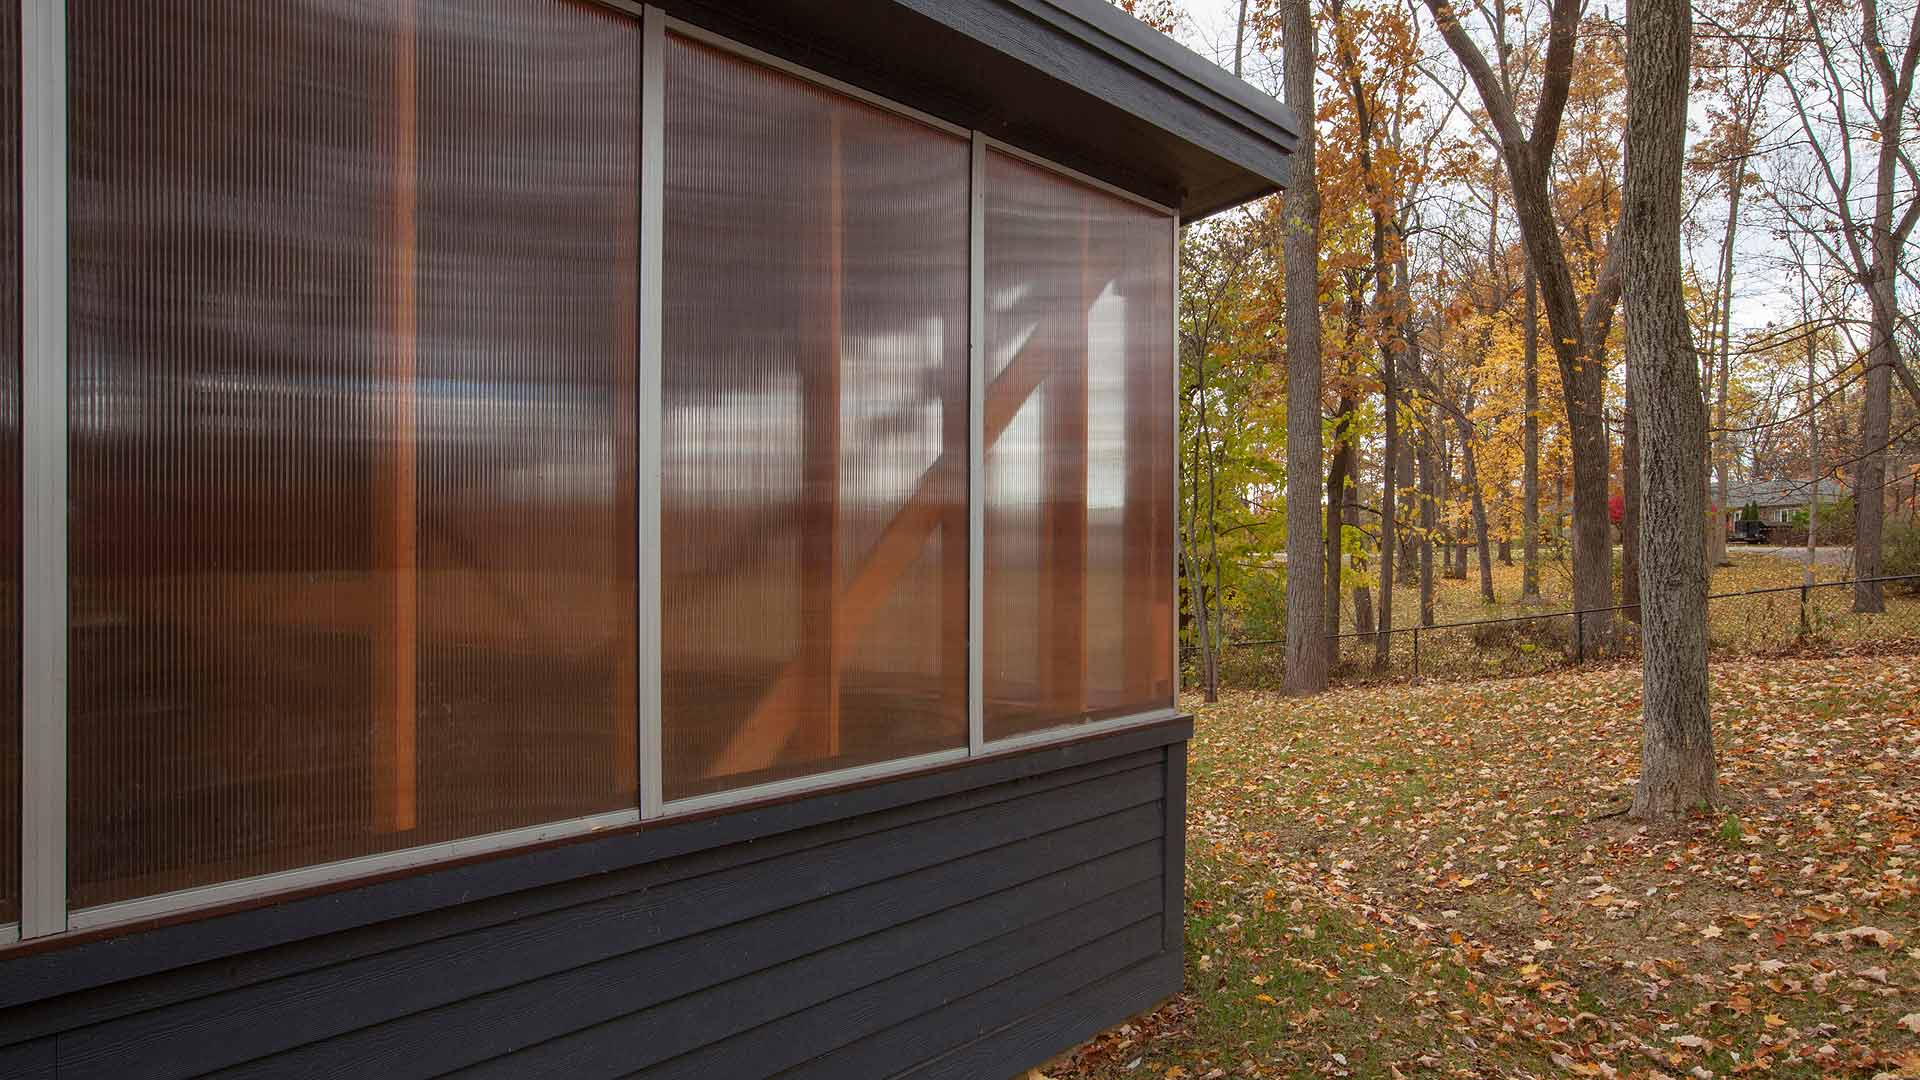 View looking west along auto workshop north elevation - translucent acrylic clerestory allows natural light to flood the garage interior while providing a dynamic architectural expression - Vintage Modern Garage - 1950's Midcentury Modern Renovation & Detached Workshop Addition, Traders Point Lake - Lakeside, 7150 Lakeside Drive, Indianapolis, Indiana - Christopher Short, Paul Reynolds, Indianapolis Architects, HAUS | Architecture For Modern Lifestyles